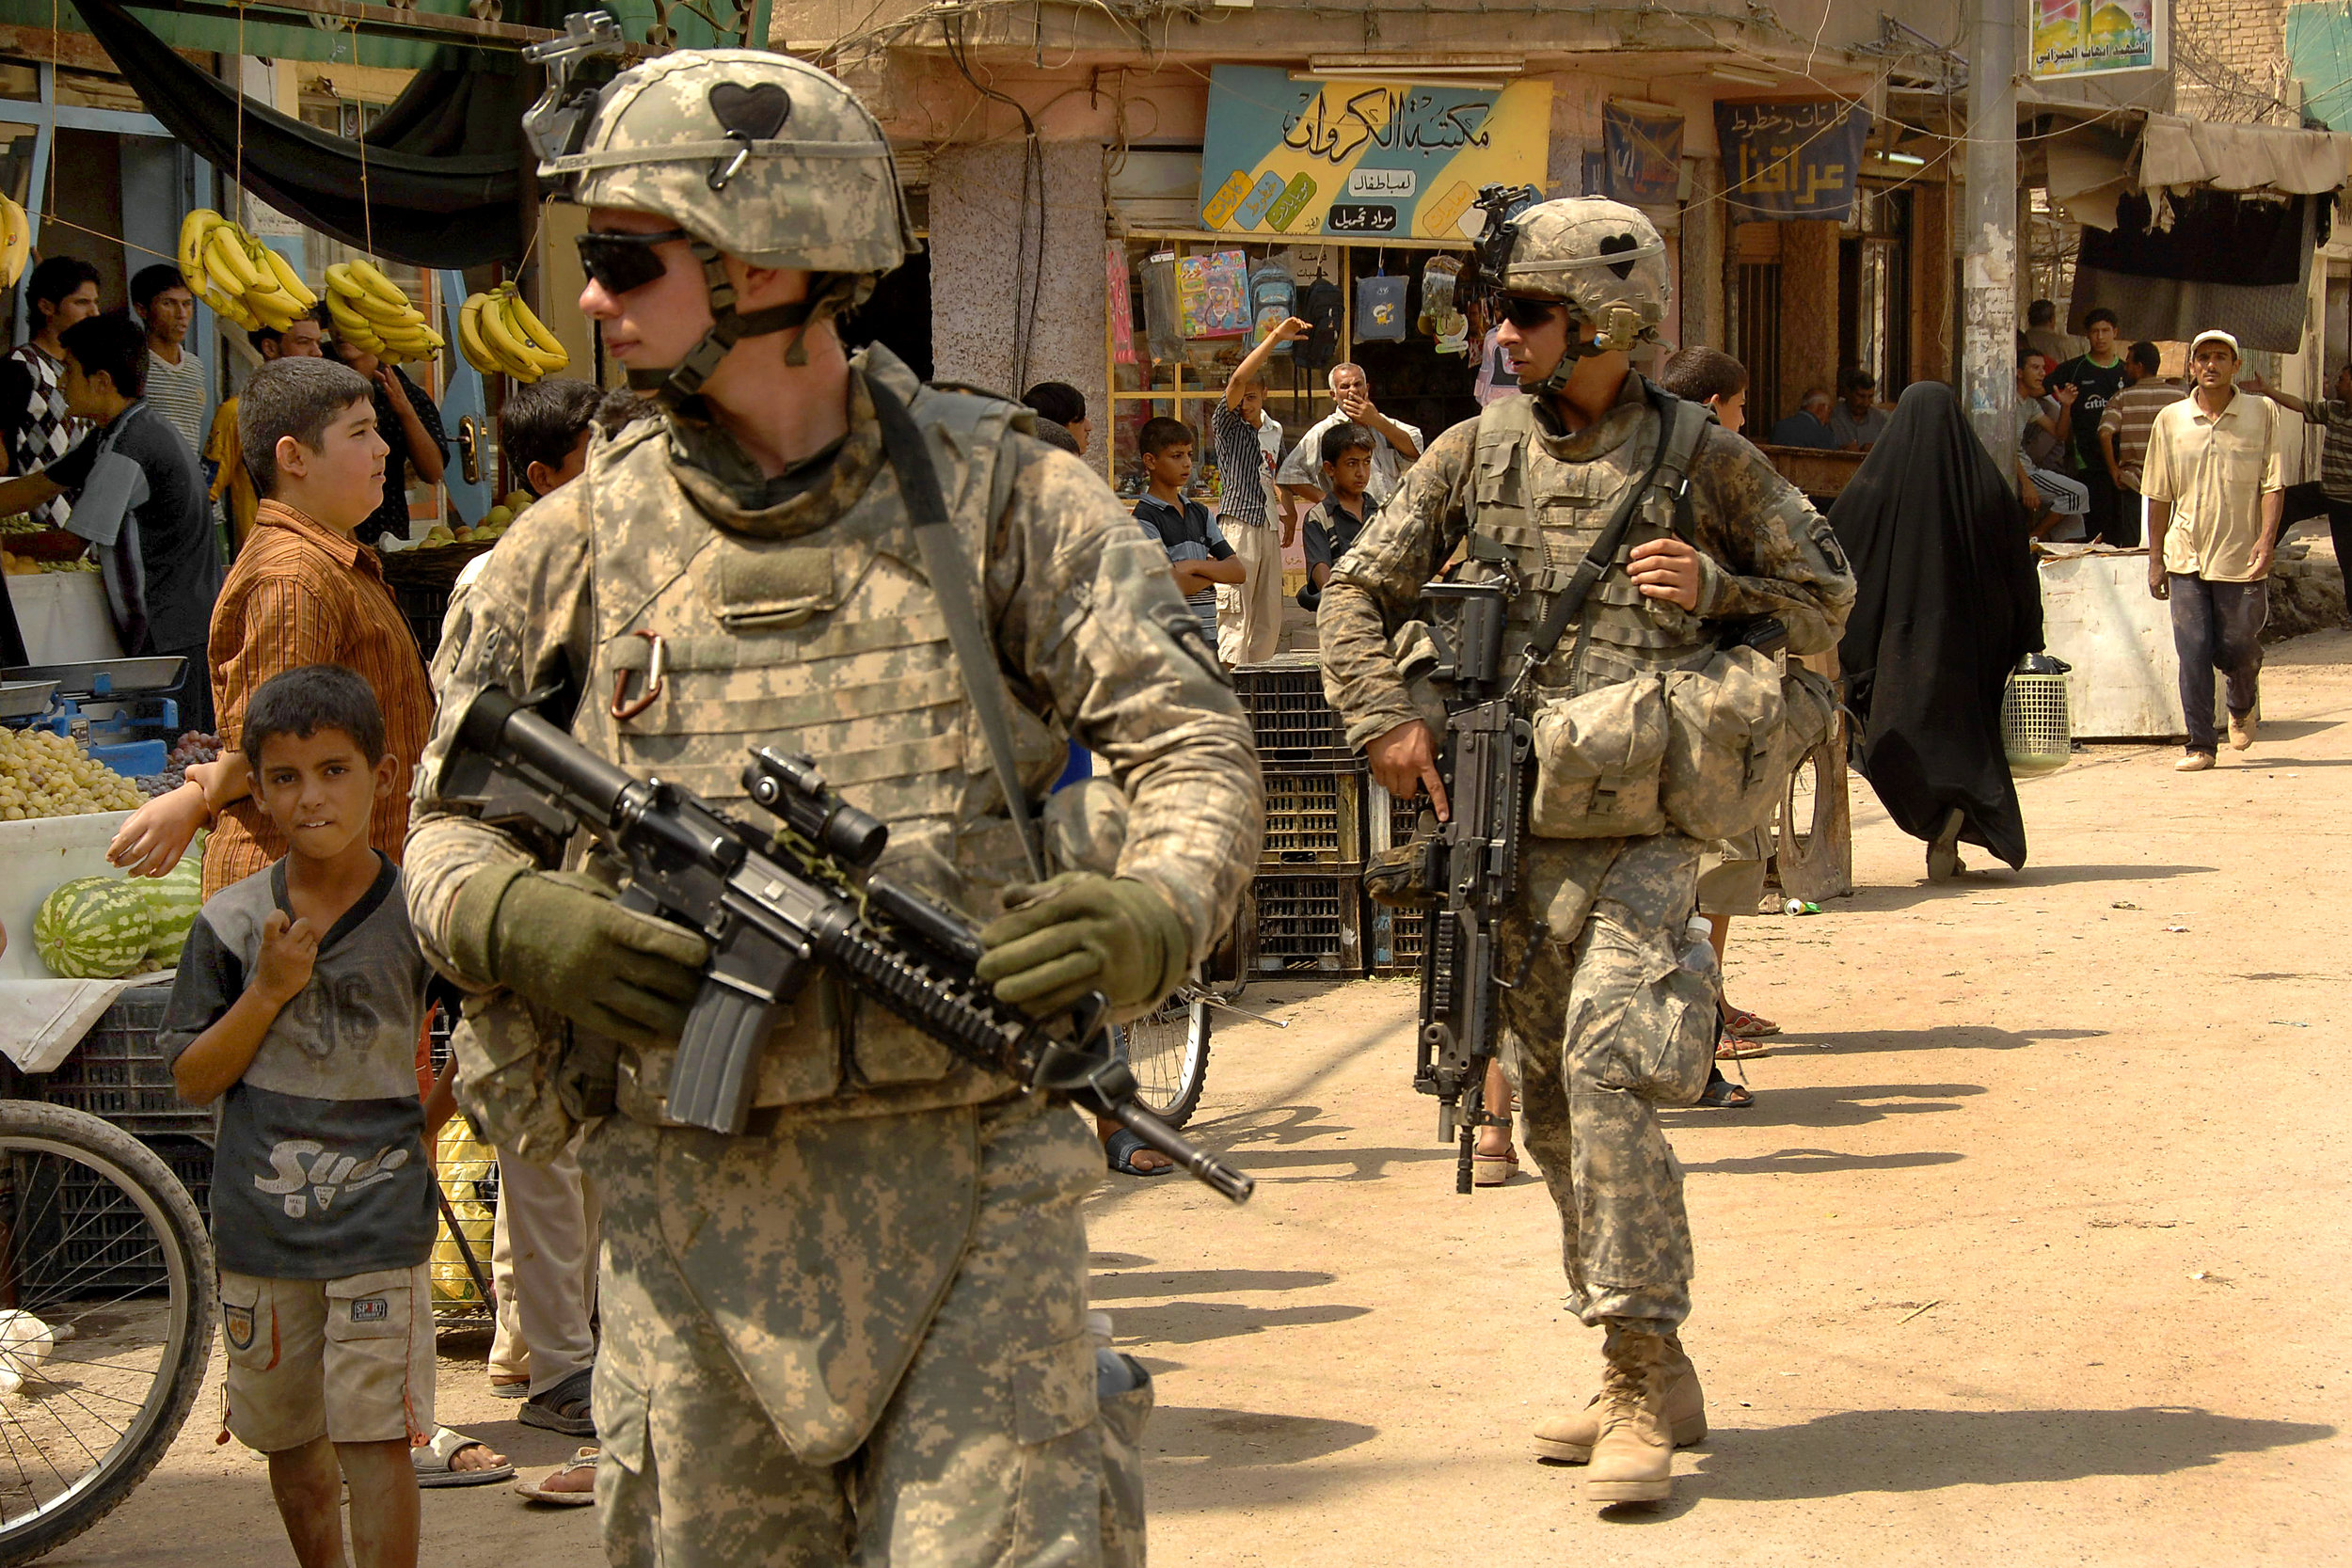 American soldiers help train Iraqi troops and advise counterterrorism missions. (U.S. Department of Defense)